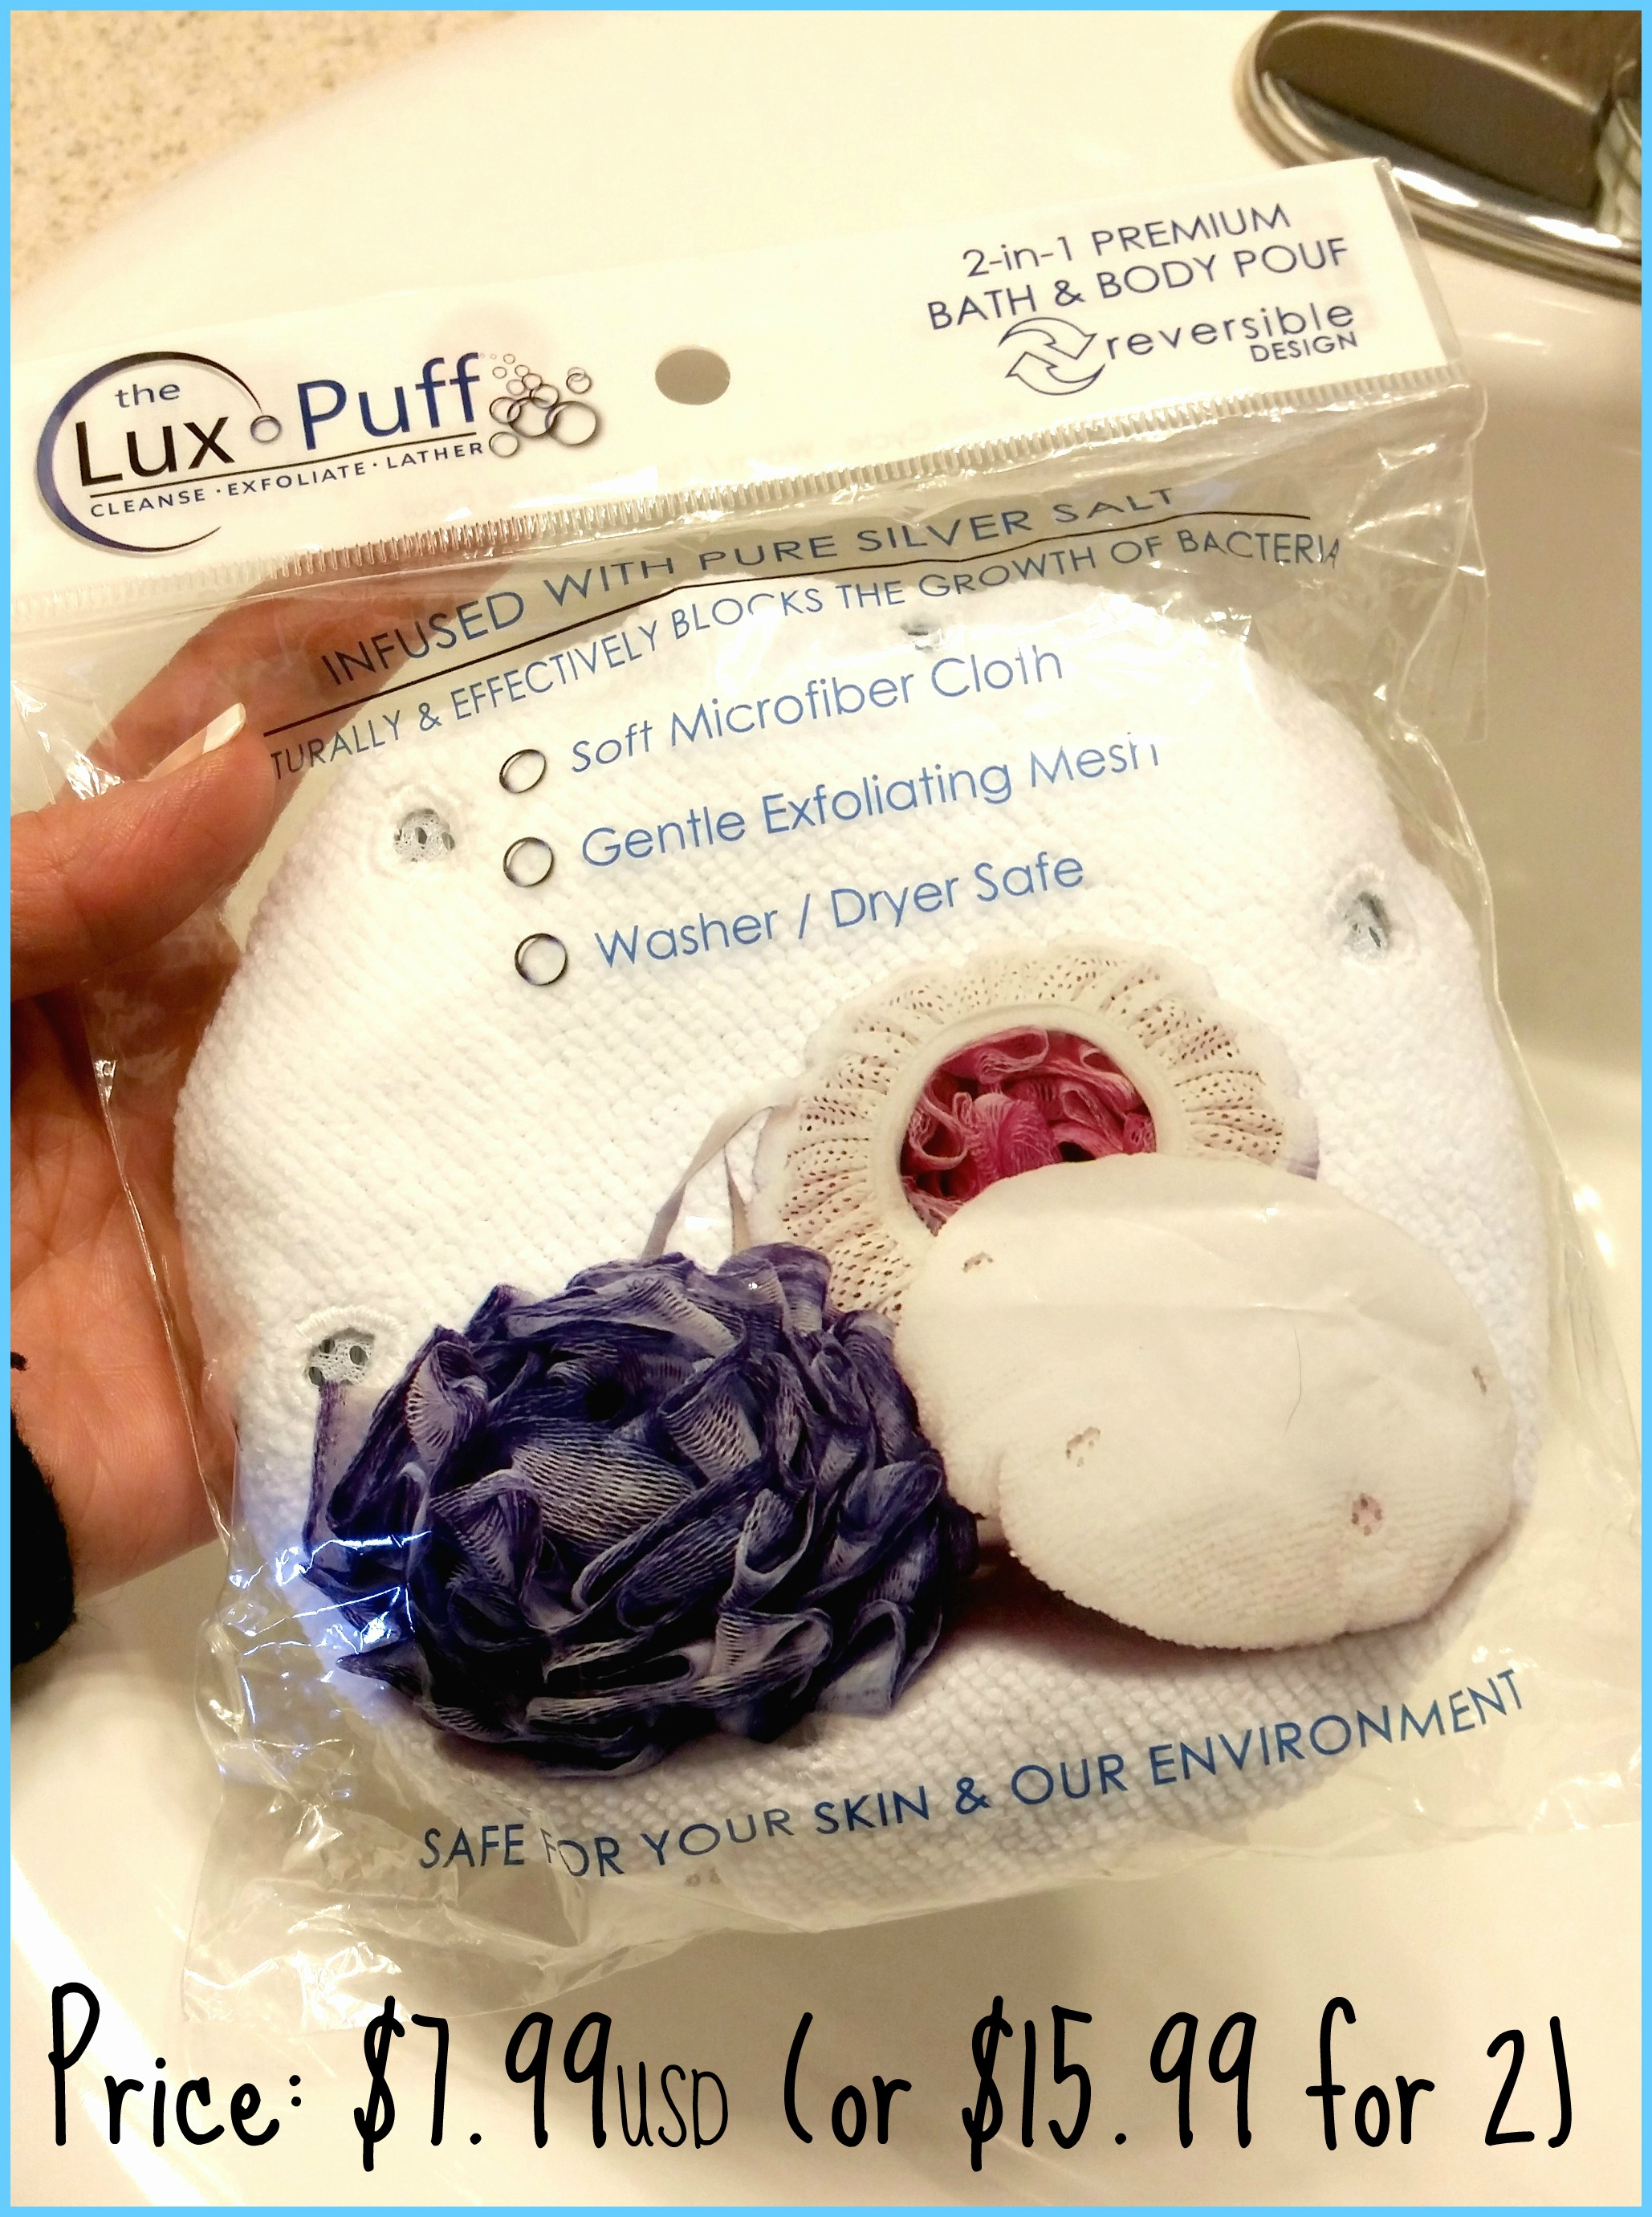 The Lux Puff Review by WhippedGreenGirl.com